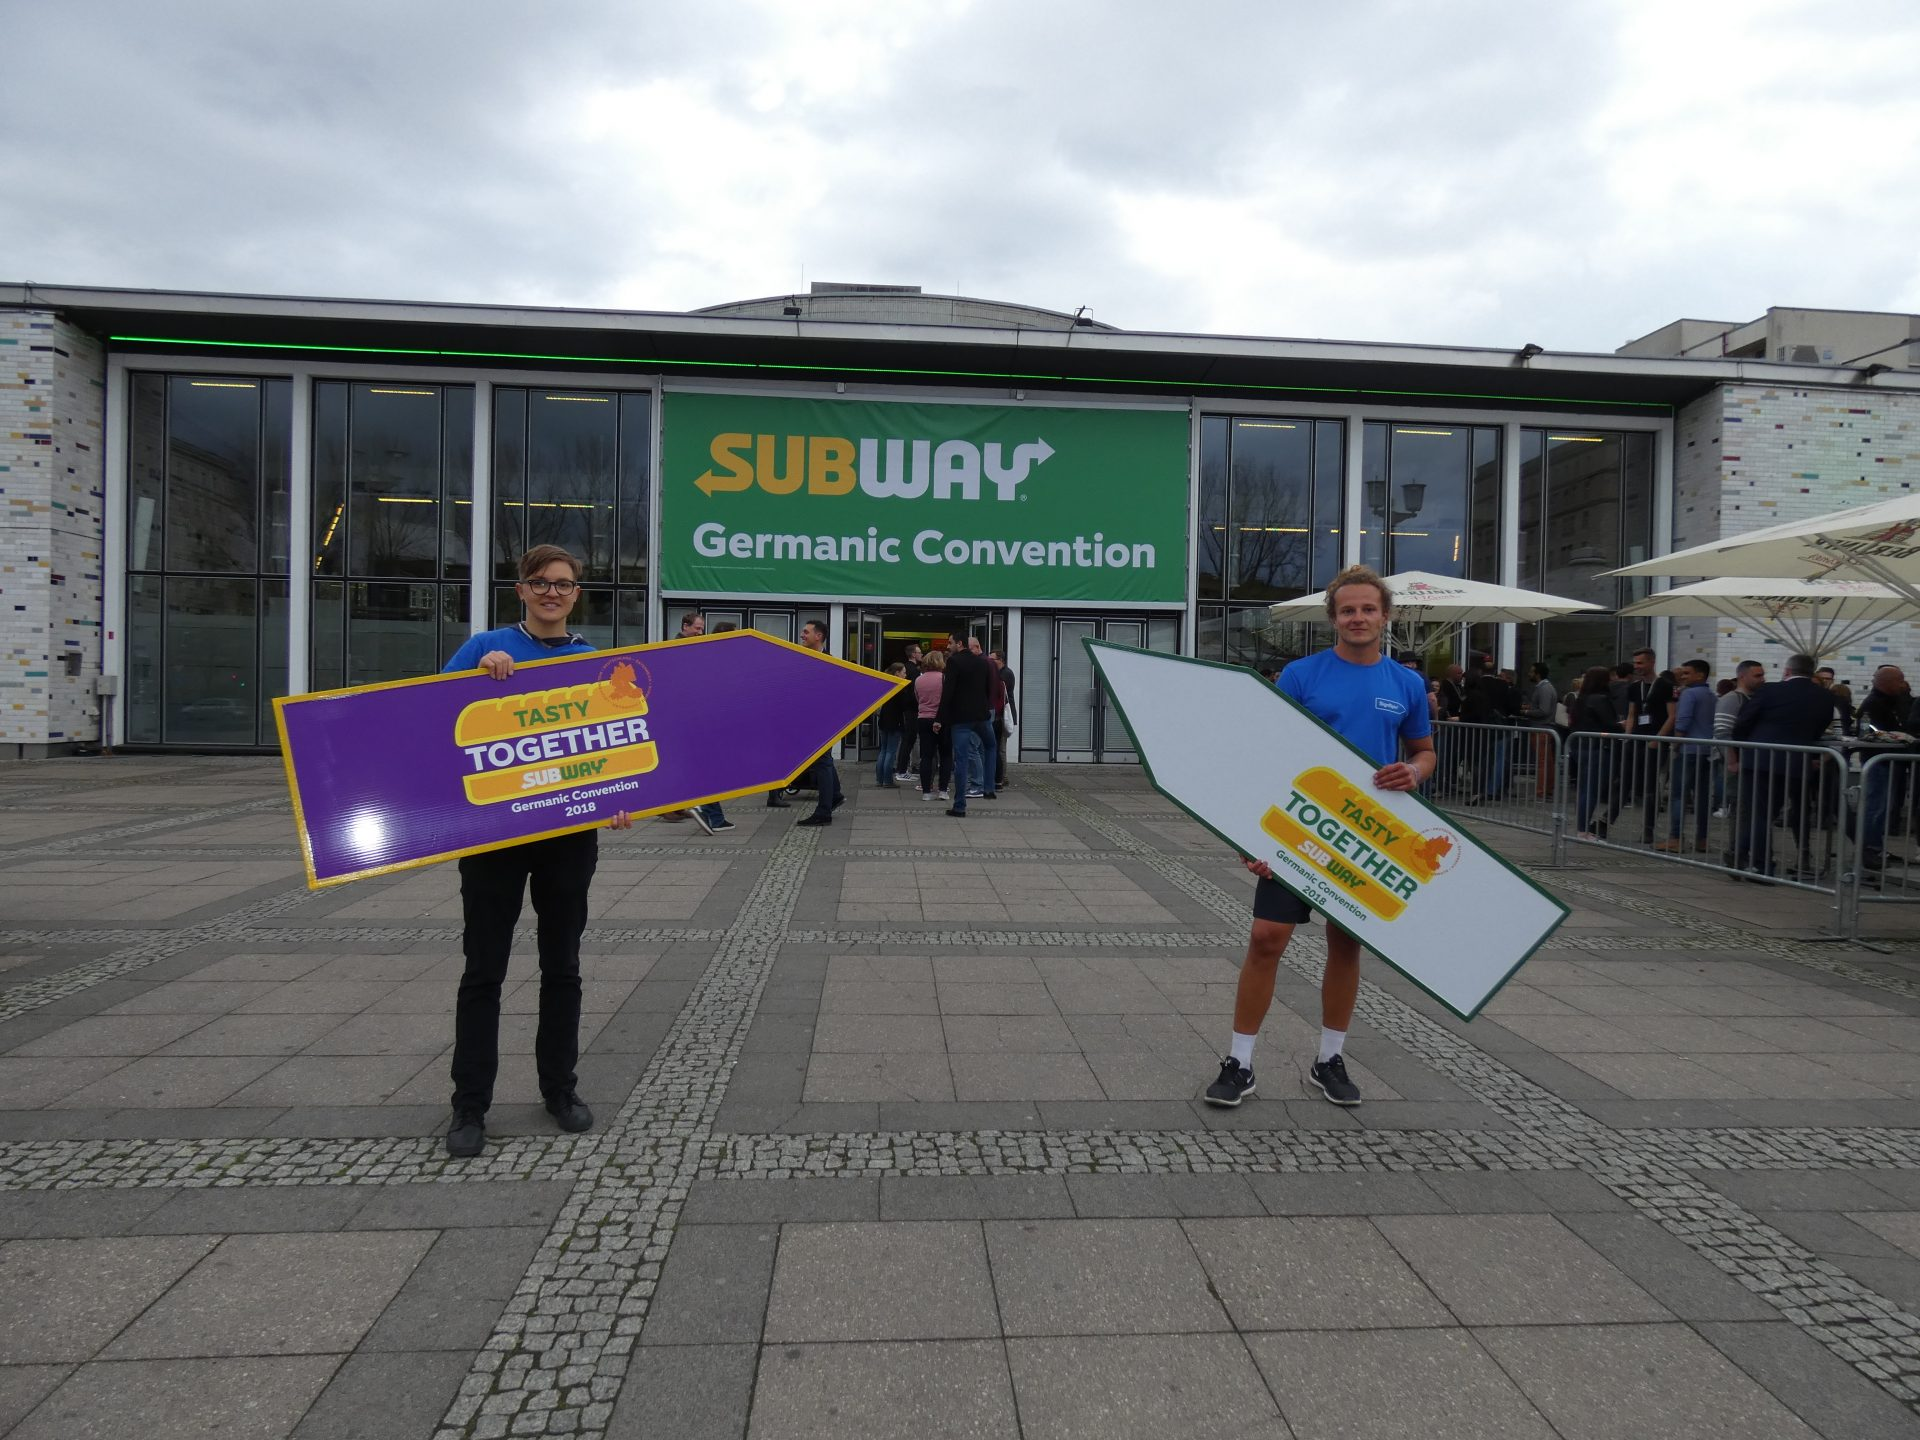 Tasty Together: Subway® Germanic Convention 2018